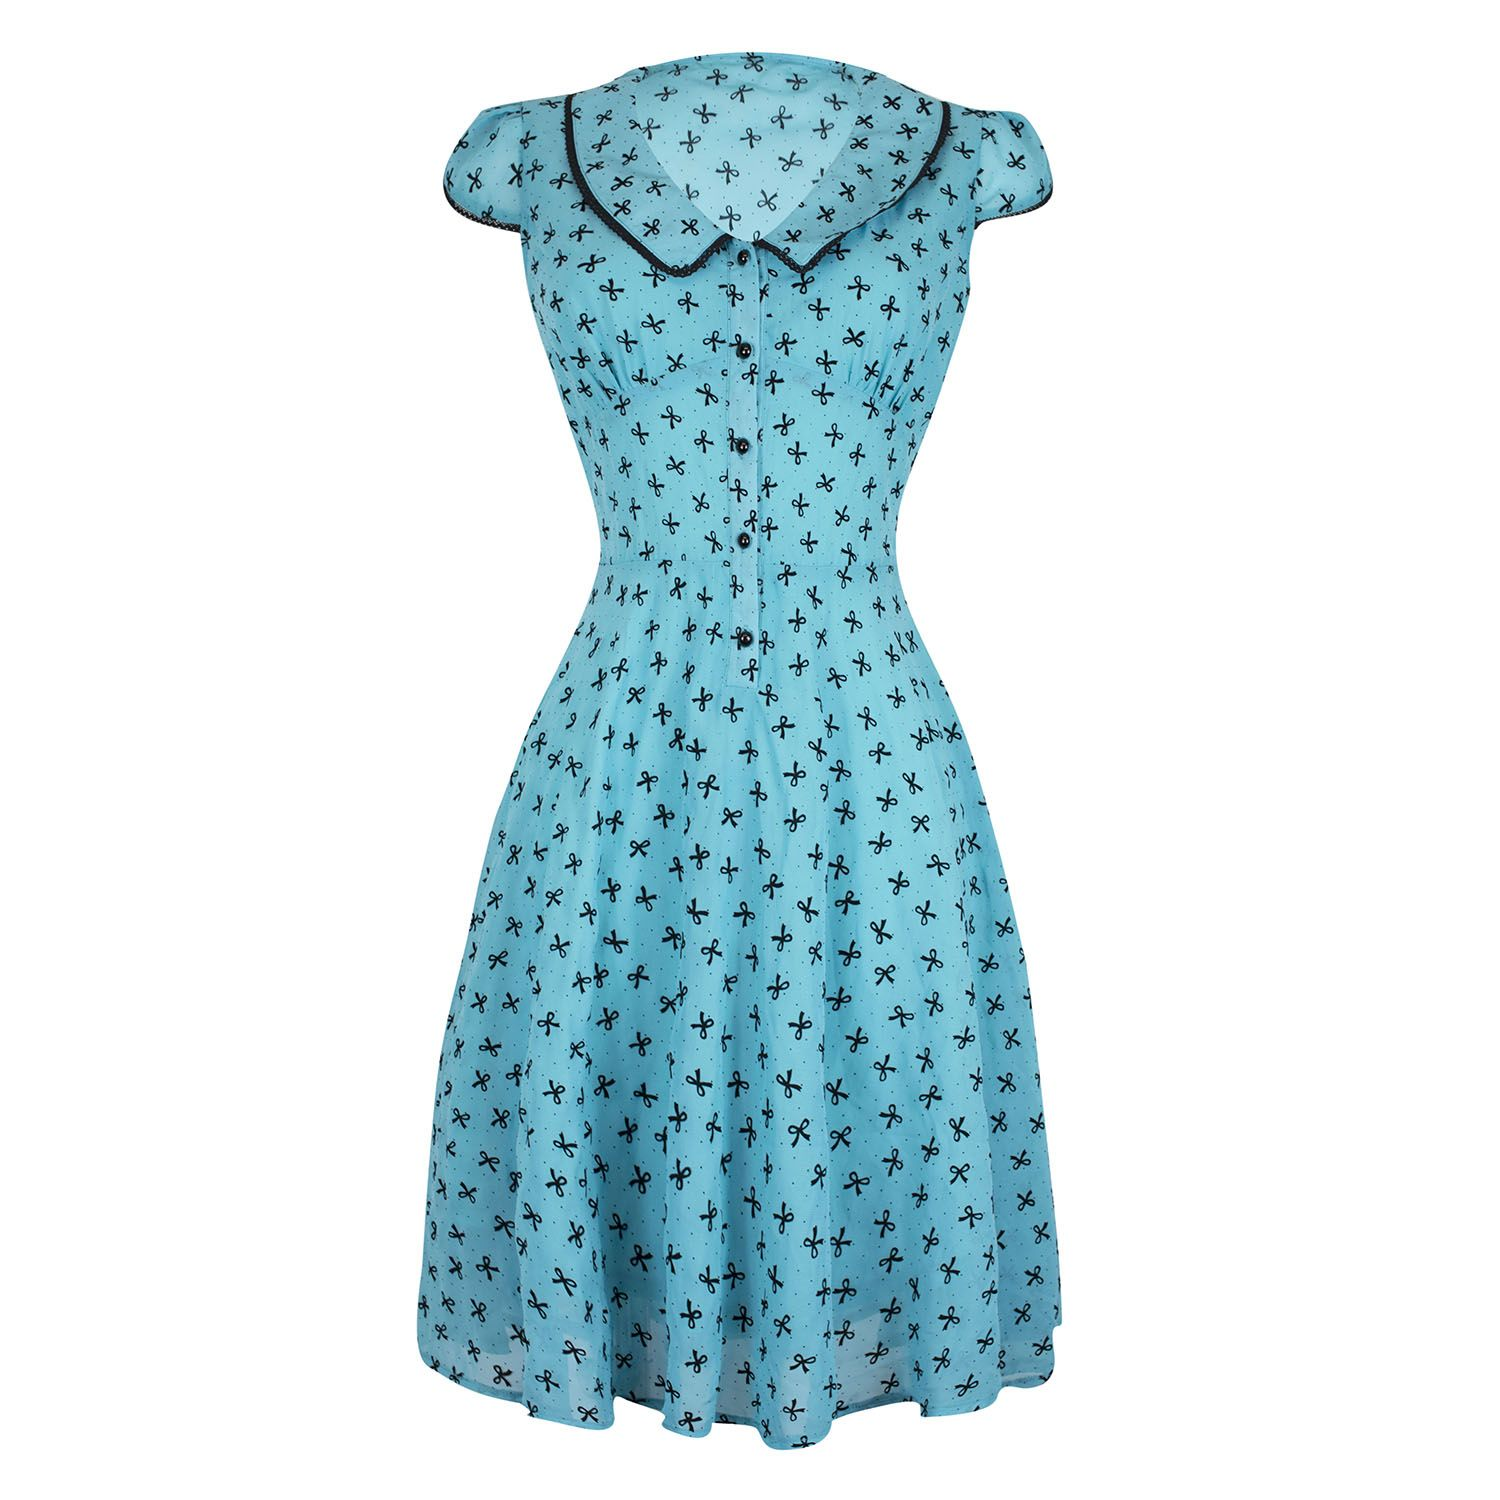 Voodoo Vixen Blue Kitsch Bow Print 40s 50s Fifties Party Prom Flared ...